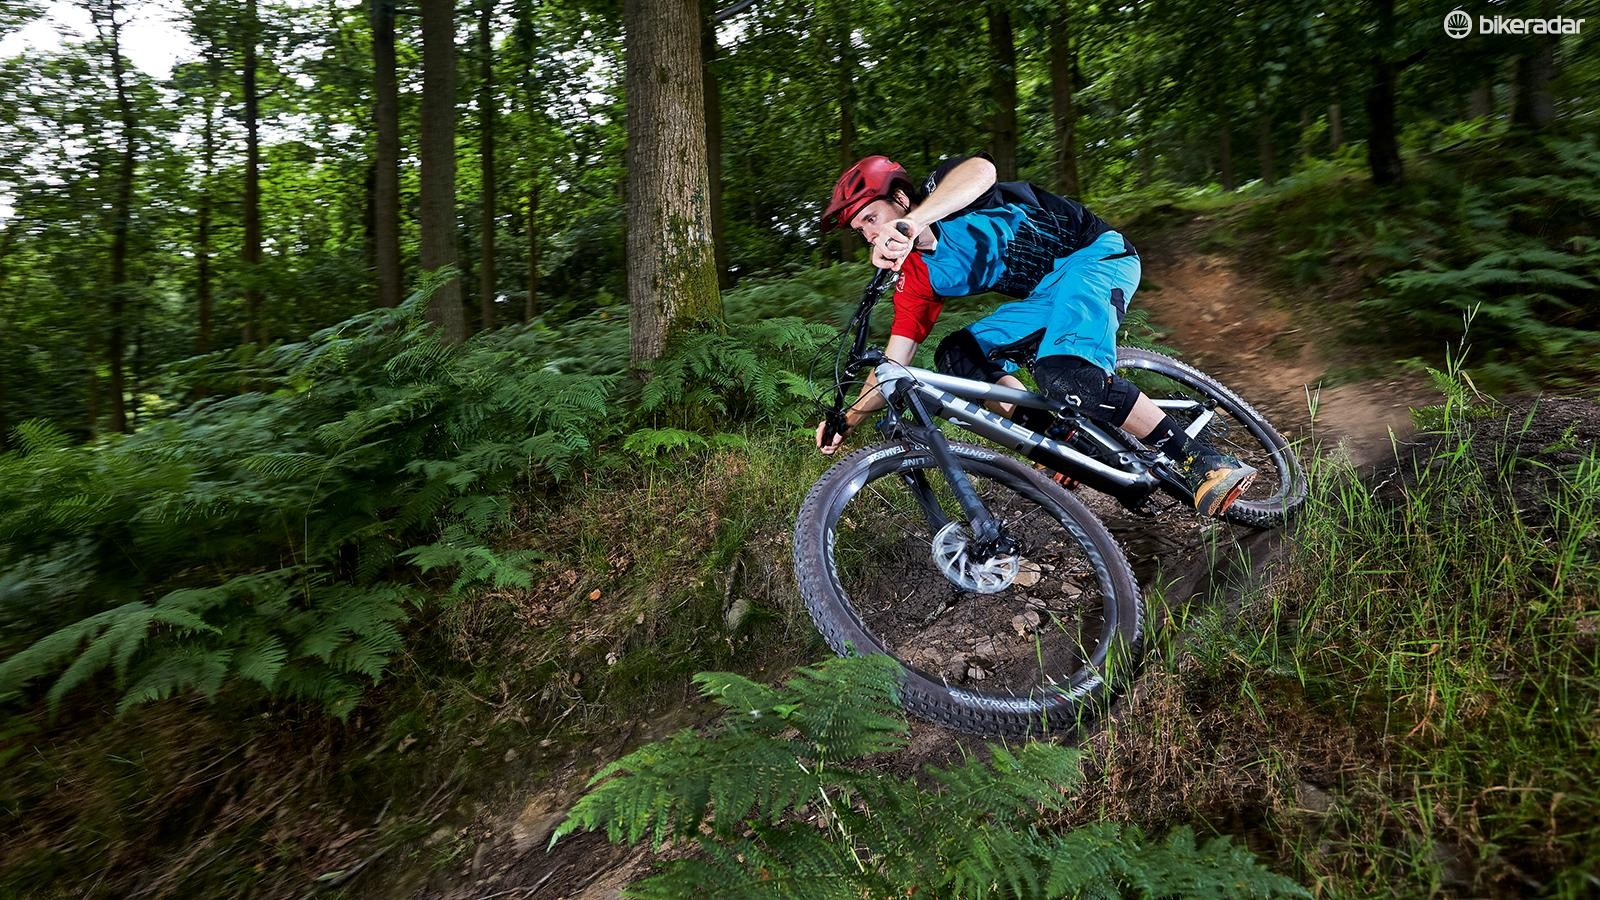 A bigger negative chamber is fitted into a smaller air can on the 2018 Fox DPS shock for a super-plush start, but Trek's 'RE:aktiv' valving still ensures efficient pedalling support